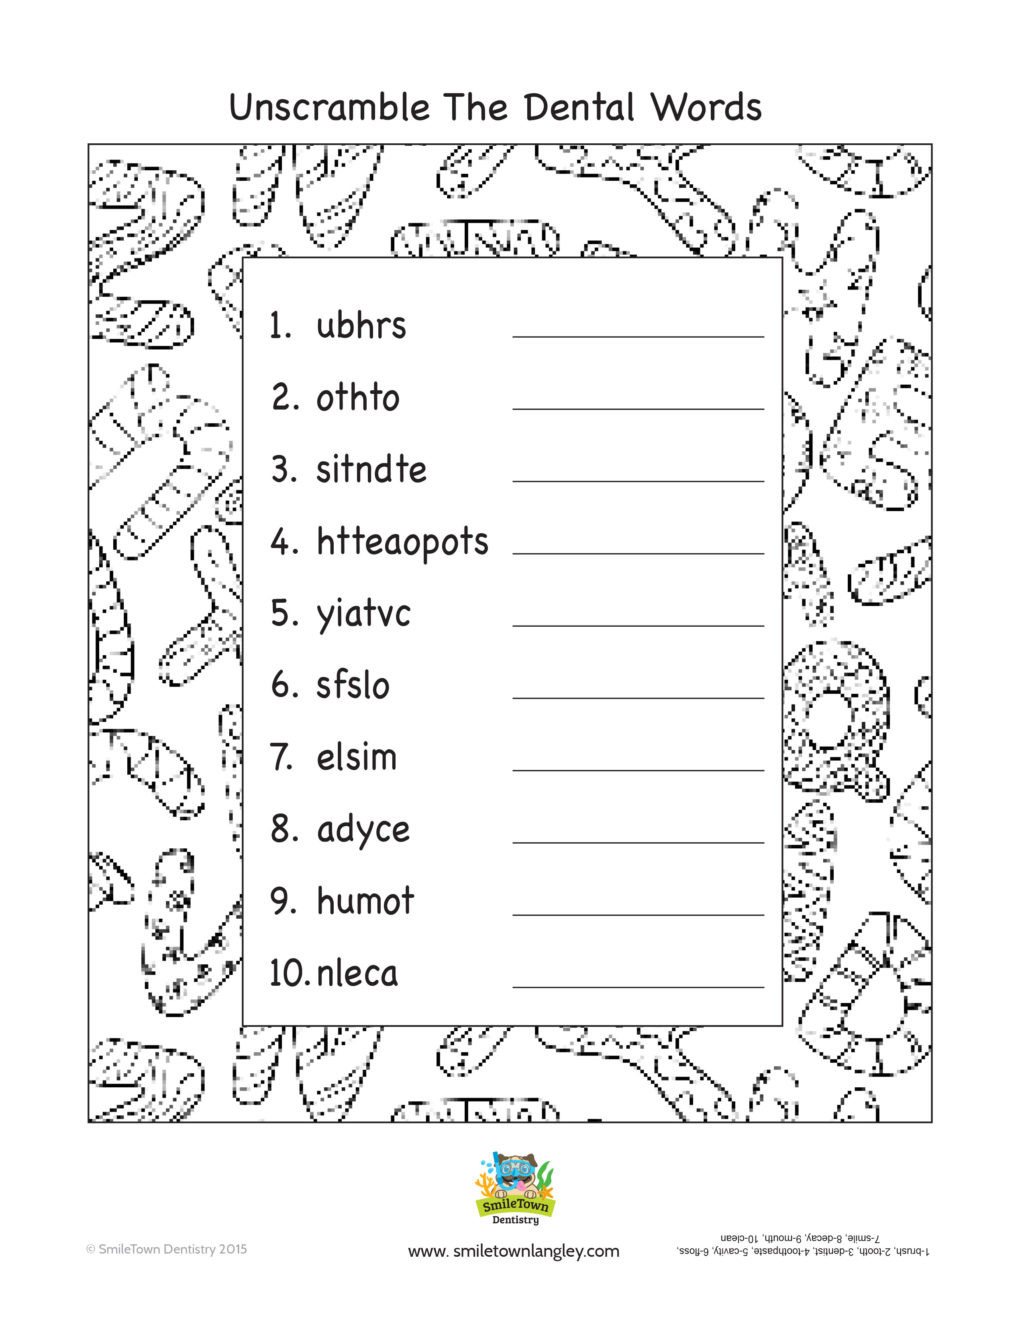 Safety Worksheets Printable Worksheet Smile town Langley Kids Activity Book Free